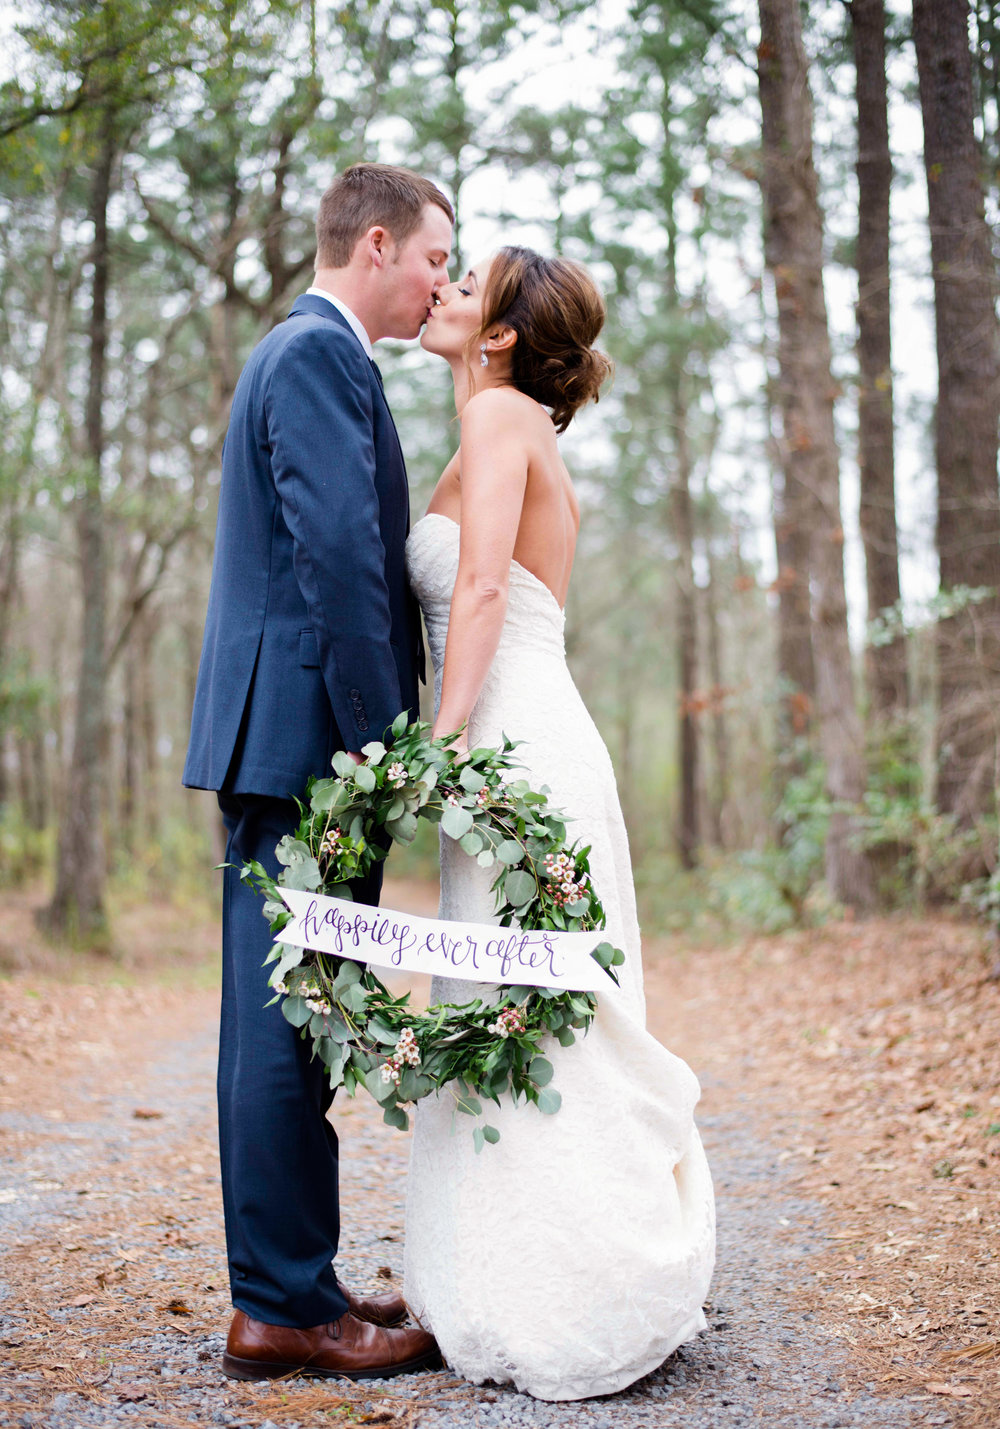 WINTER WEDDING AT OAKLEY FARMS